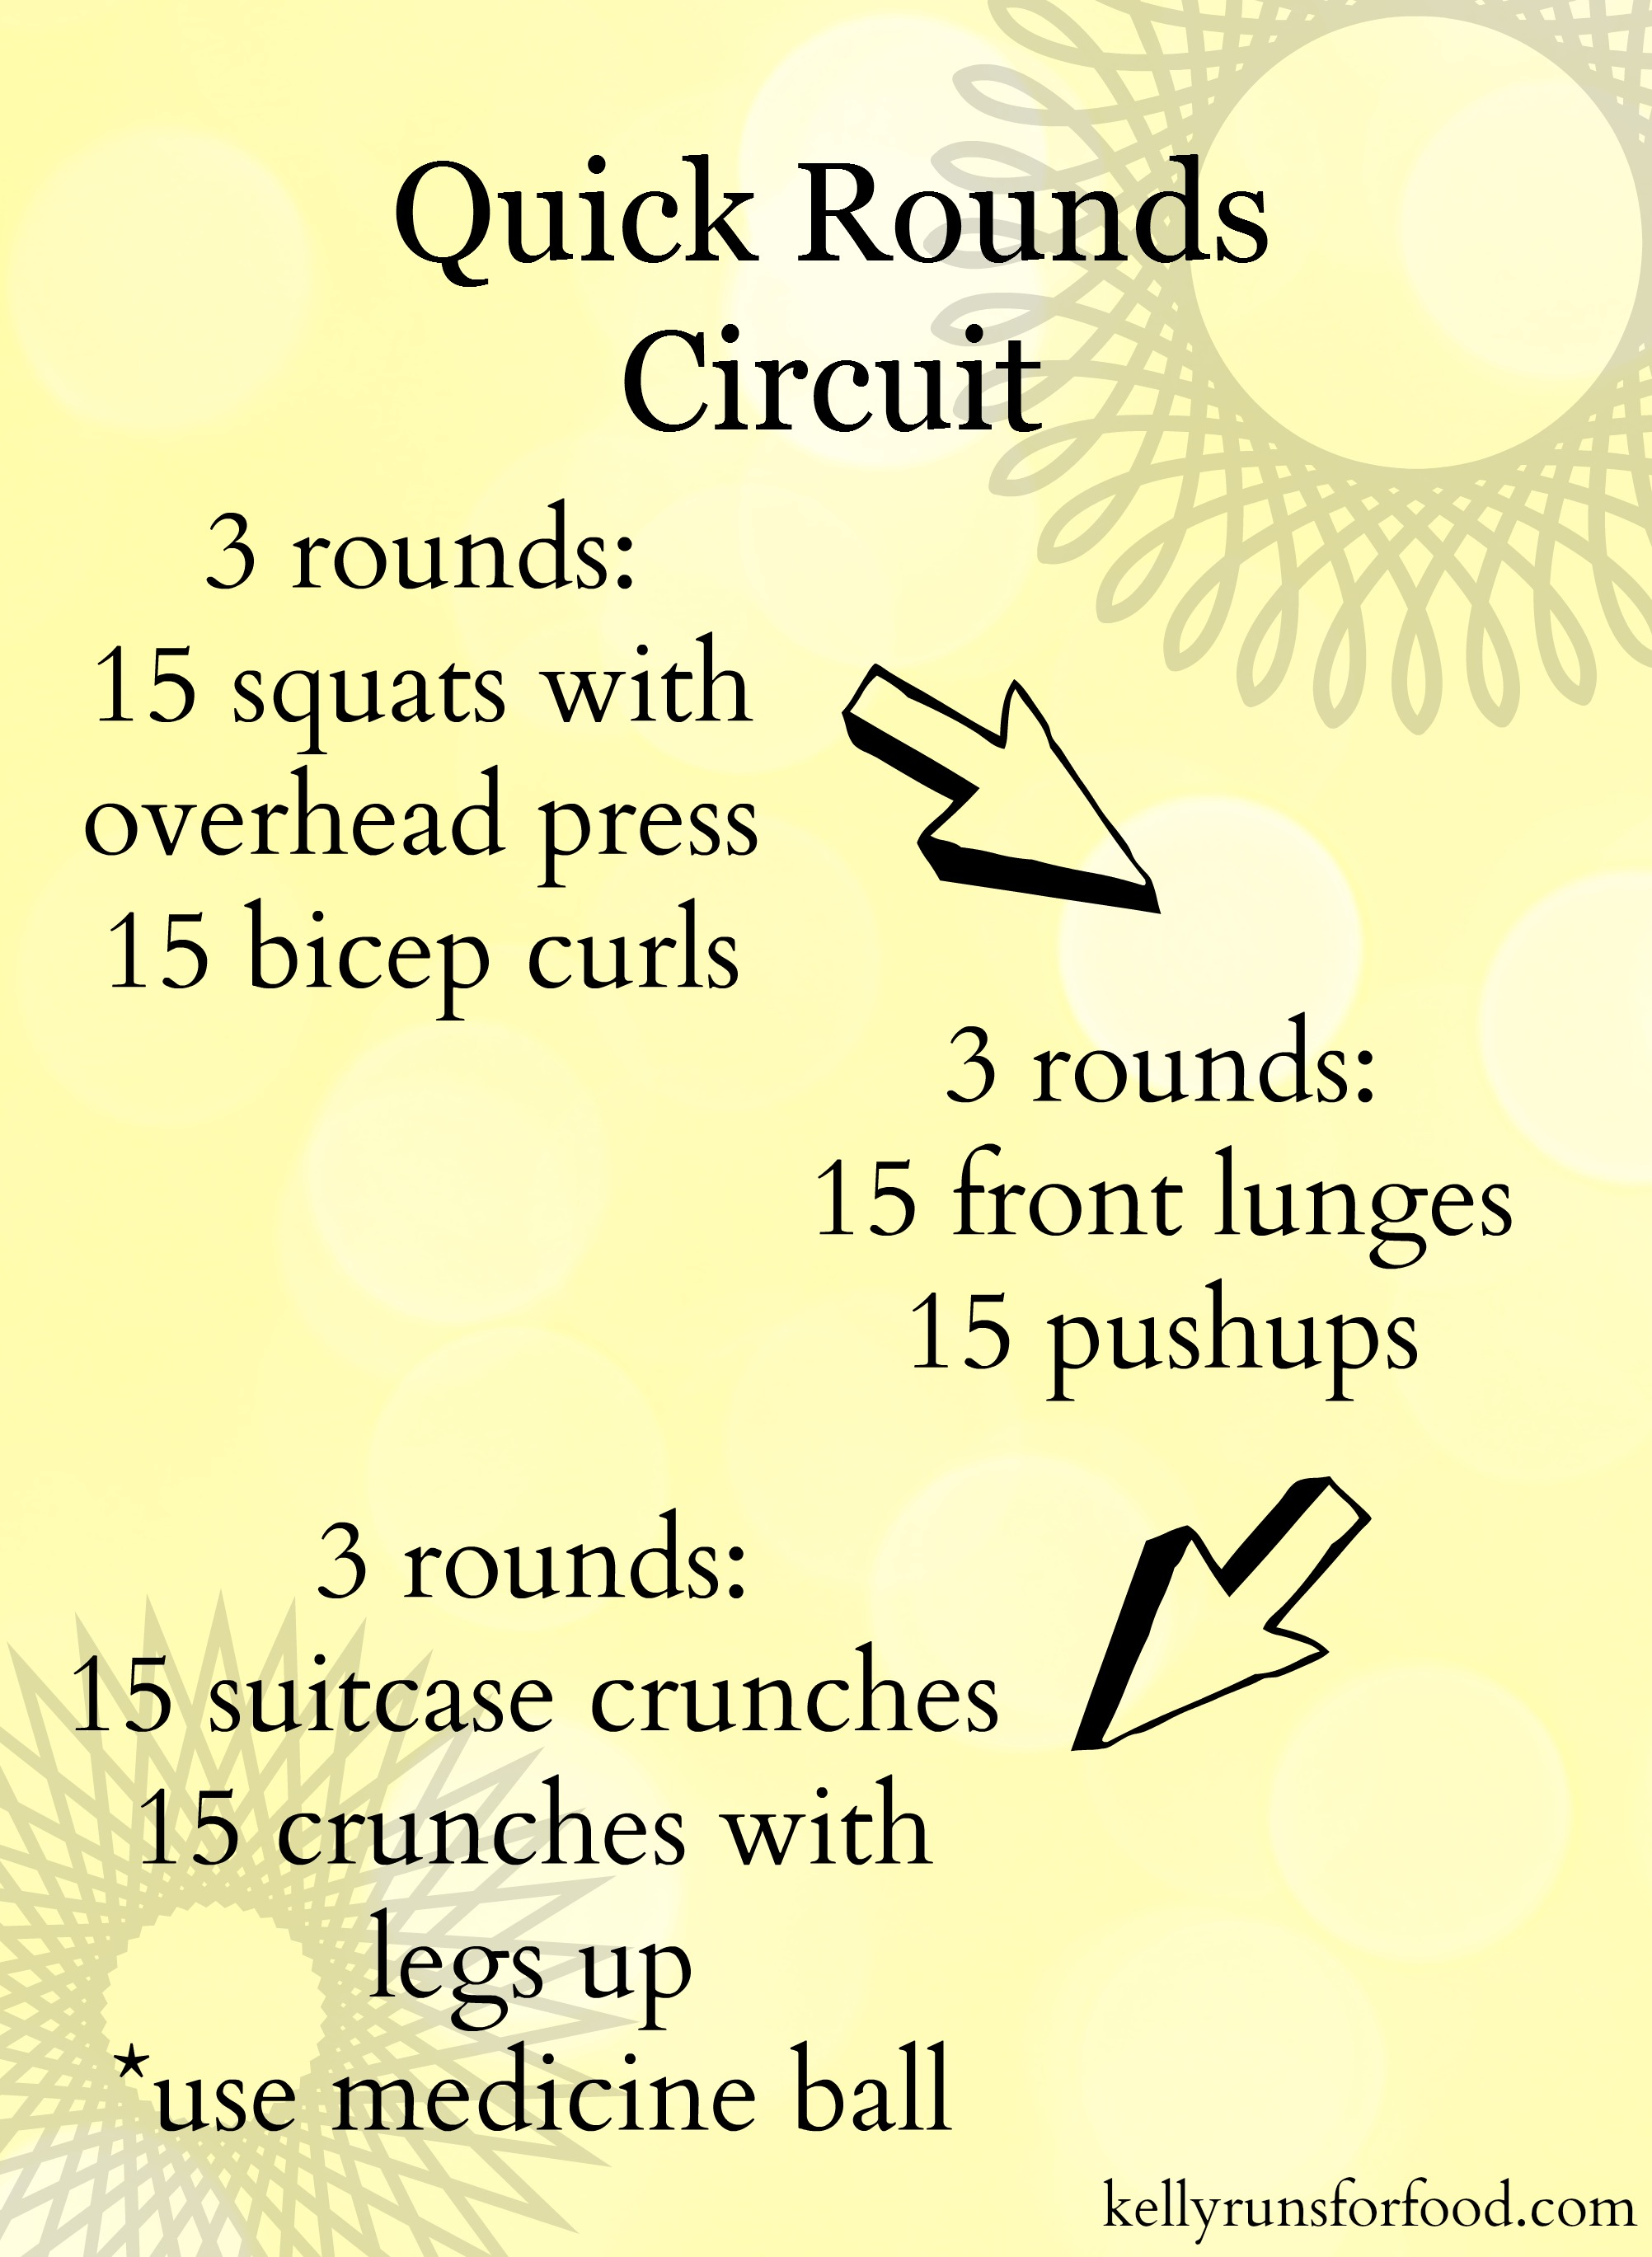 Quick Rounds Circuit